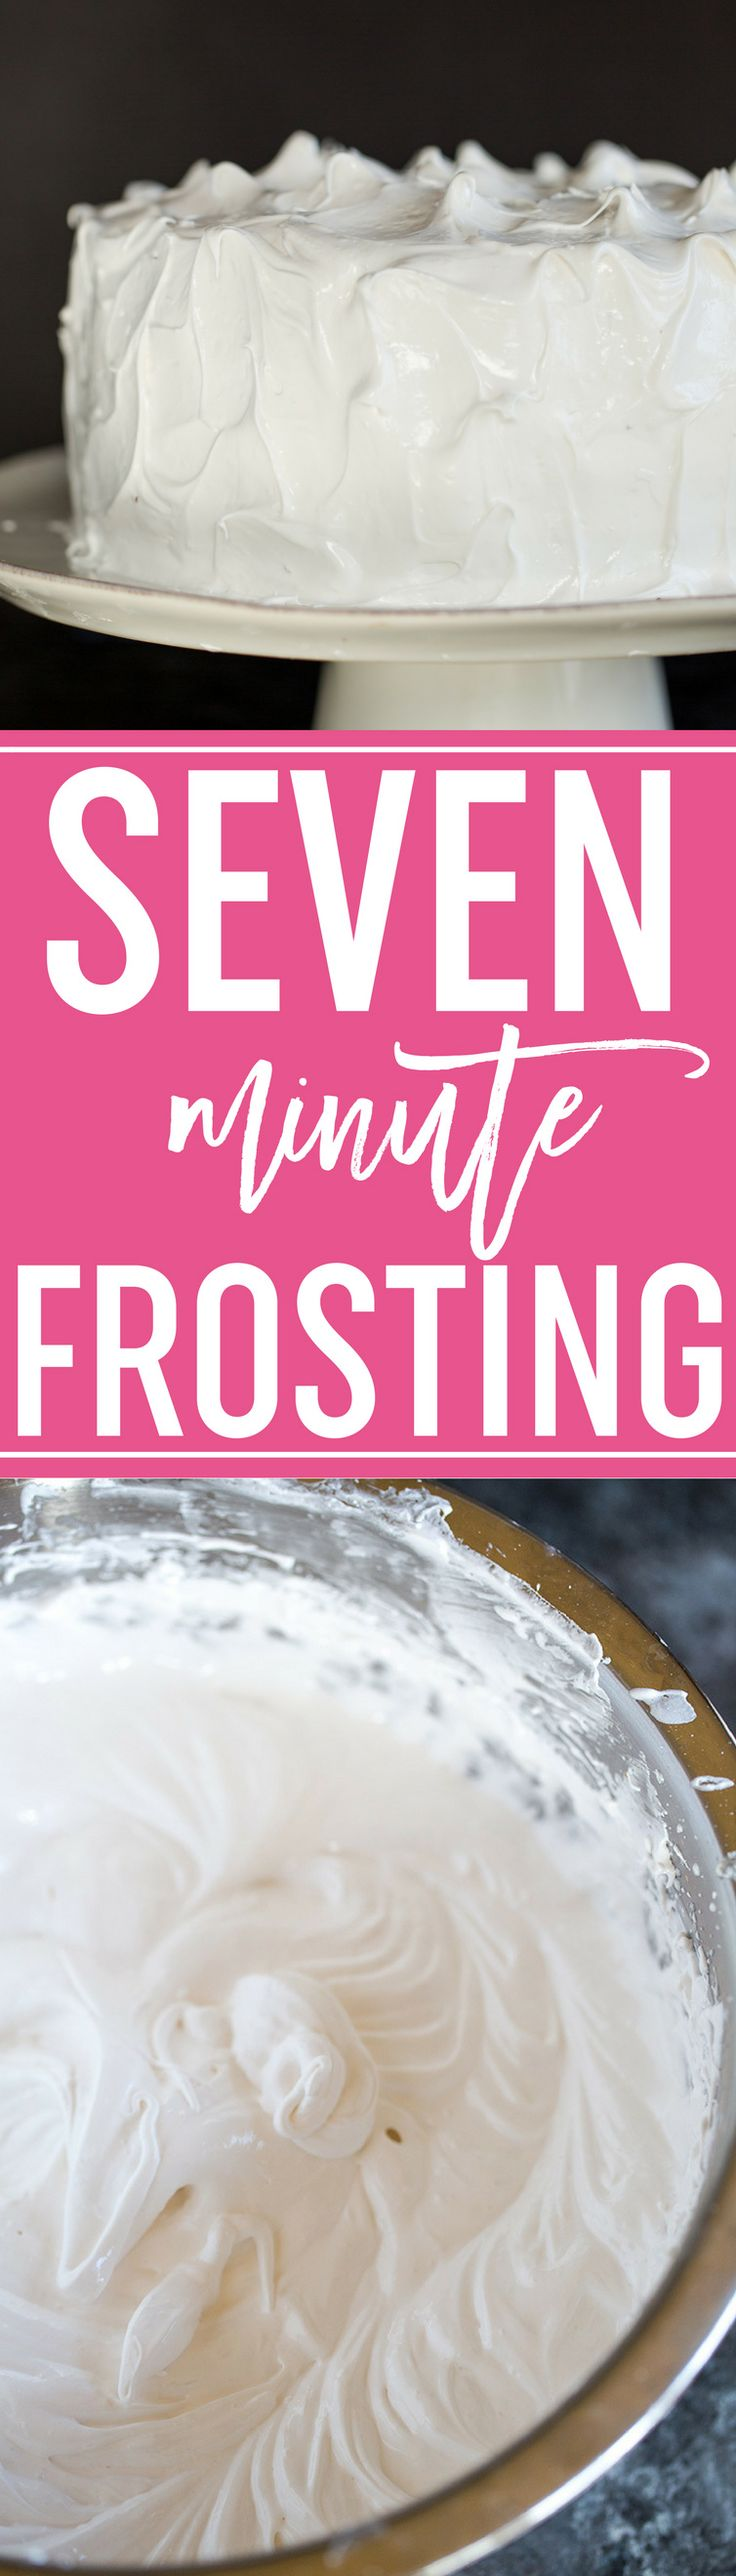 7 Minute Frosting :: The classic meringue or marshmallow-like frosting that is light, fluffy, and holds perfect peaks. Great for cakes and cupcakes!  via @browneyedbaker